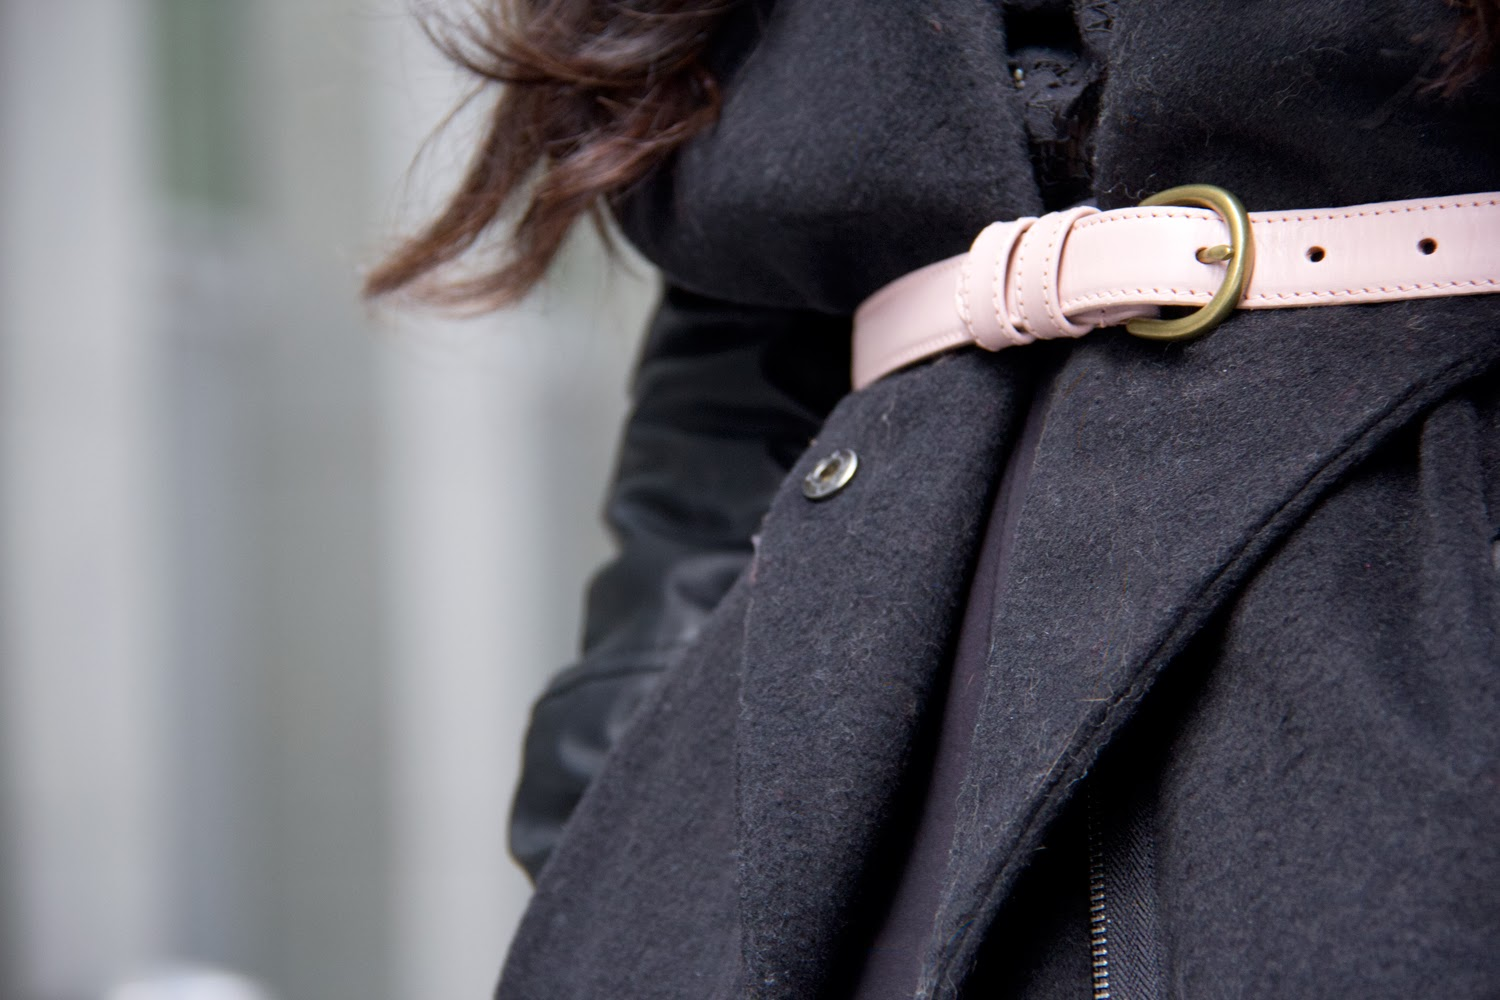 Black-Faux-Leather-Sleeve-Coat, American-Apparel-Pink-Belt